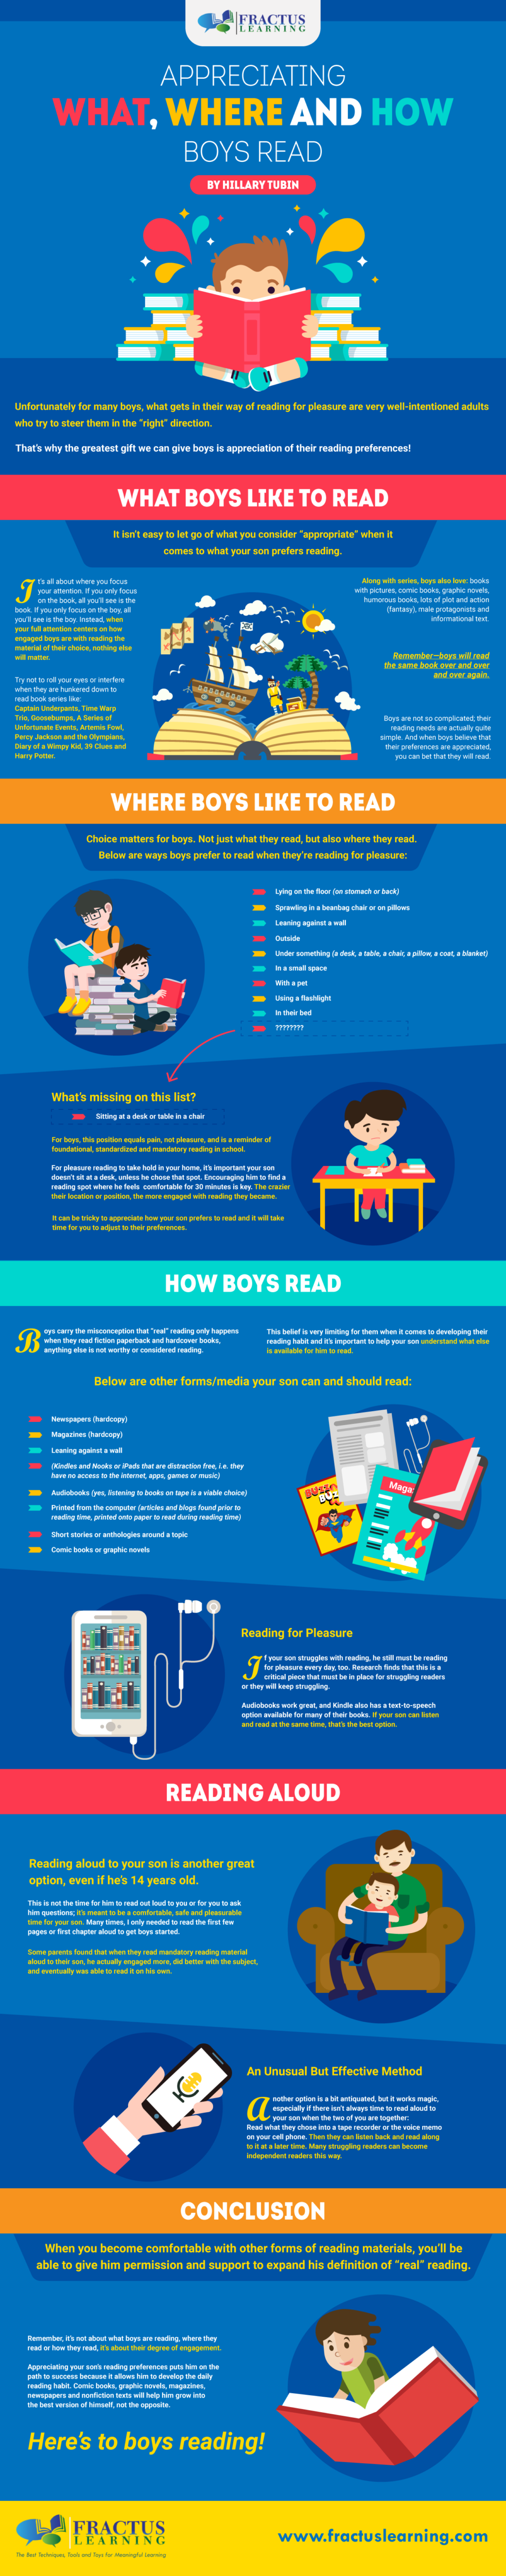 Appreciating What, Where and How Boys Read Infographic